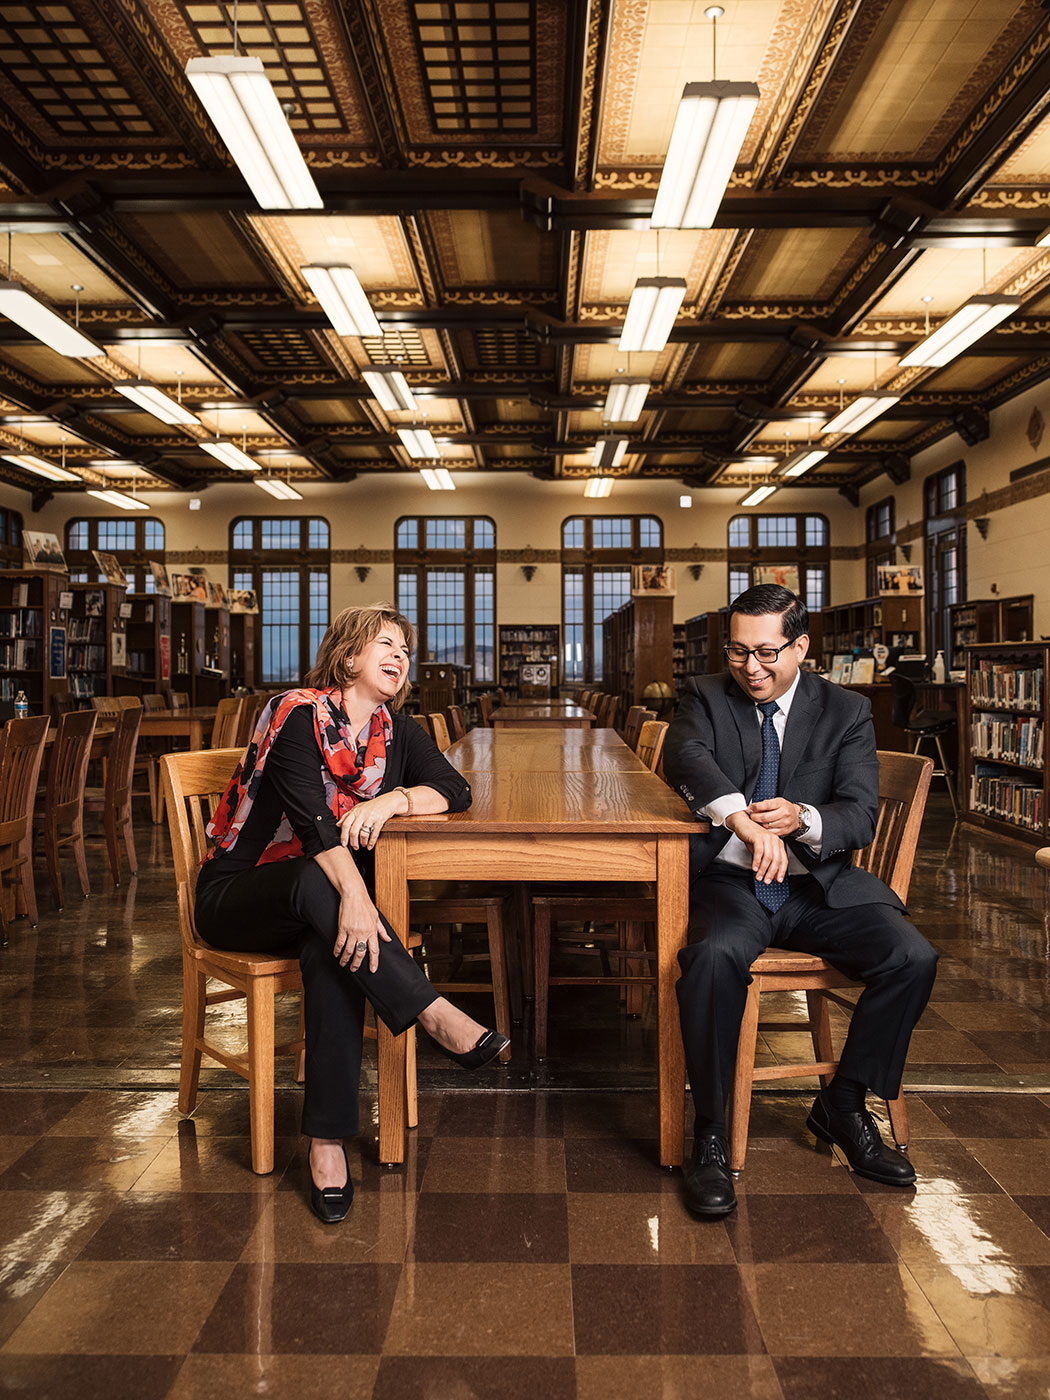 Leticia Van de Putte (left) and Diego Bernal (right) in the library at Thomas Jefferson High School in San Antonio, TX on Feb 26th, 2018. (Josh Huskin for Texas Monthly)